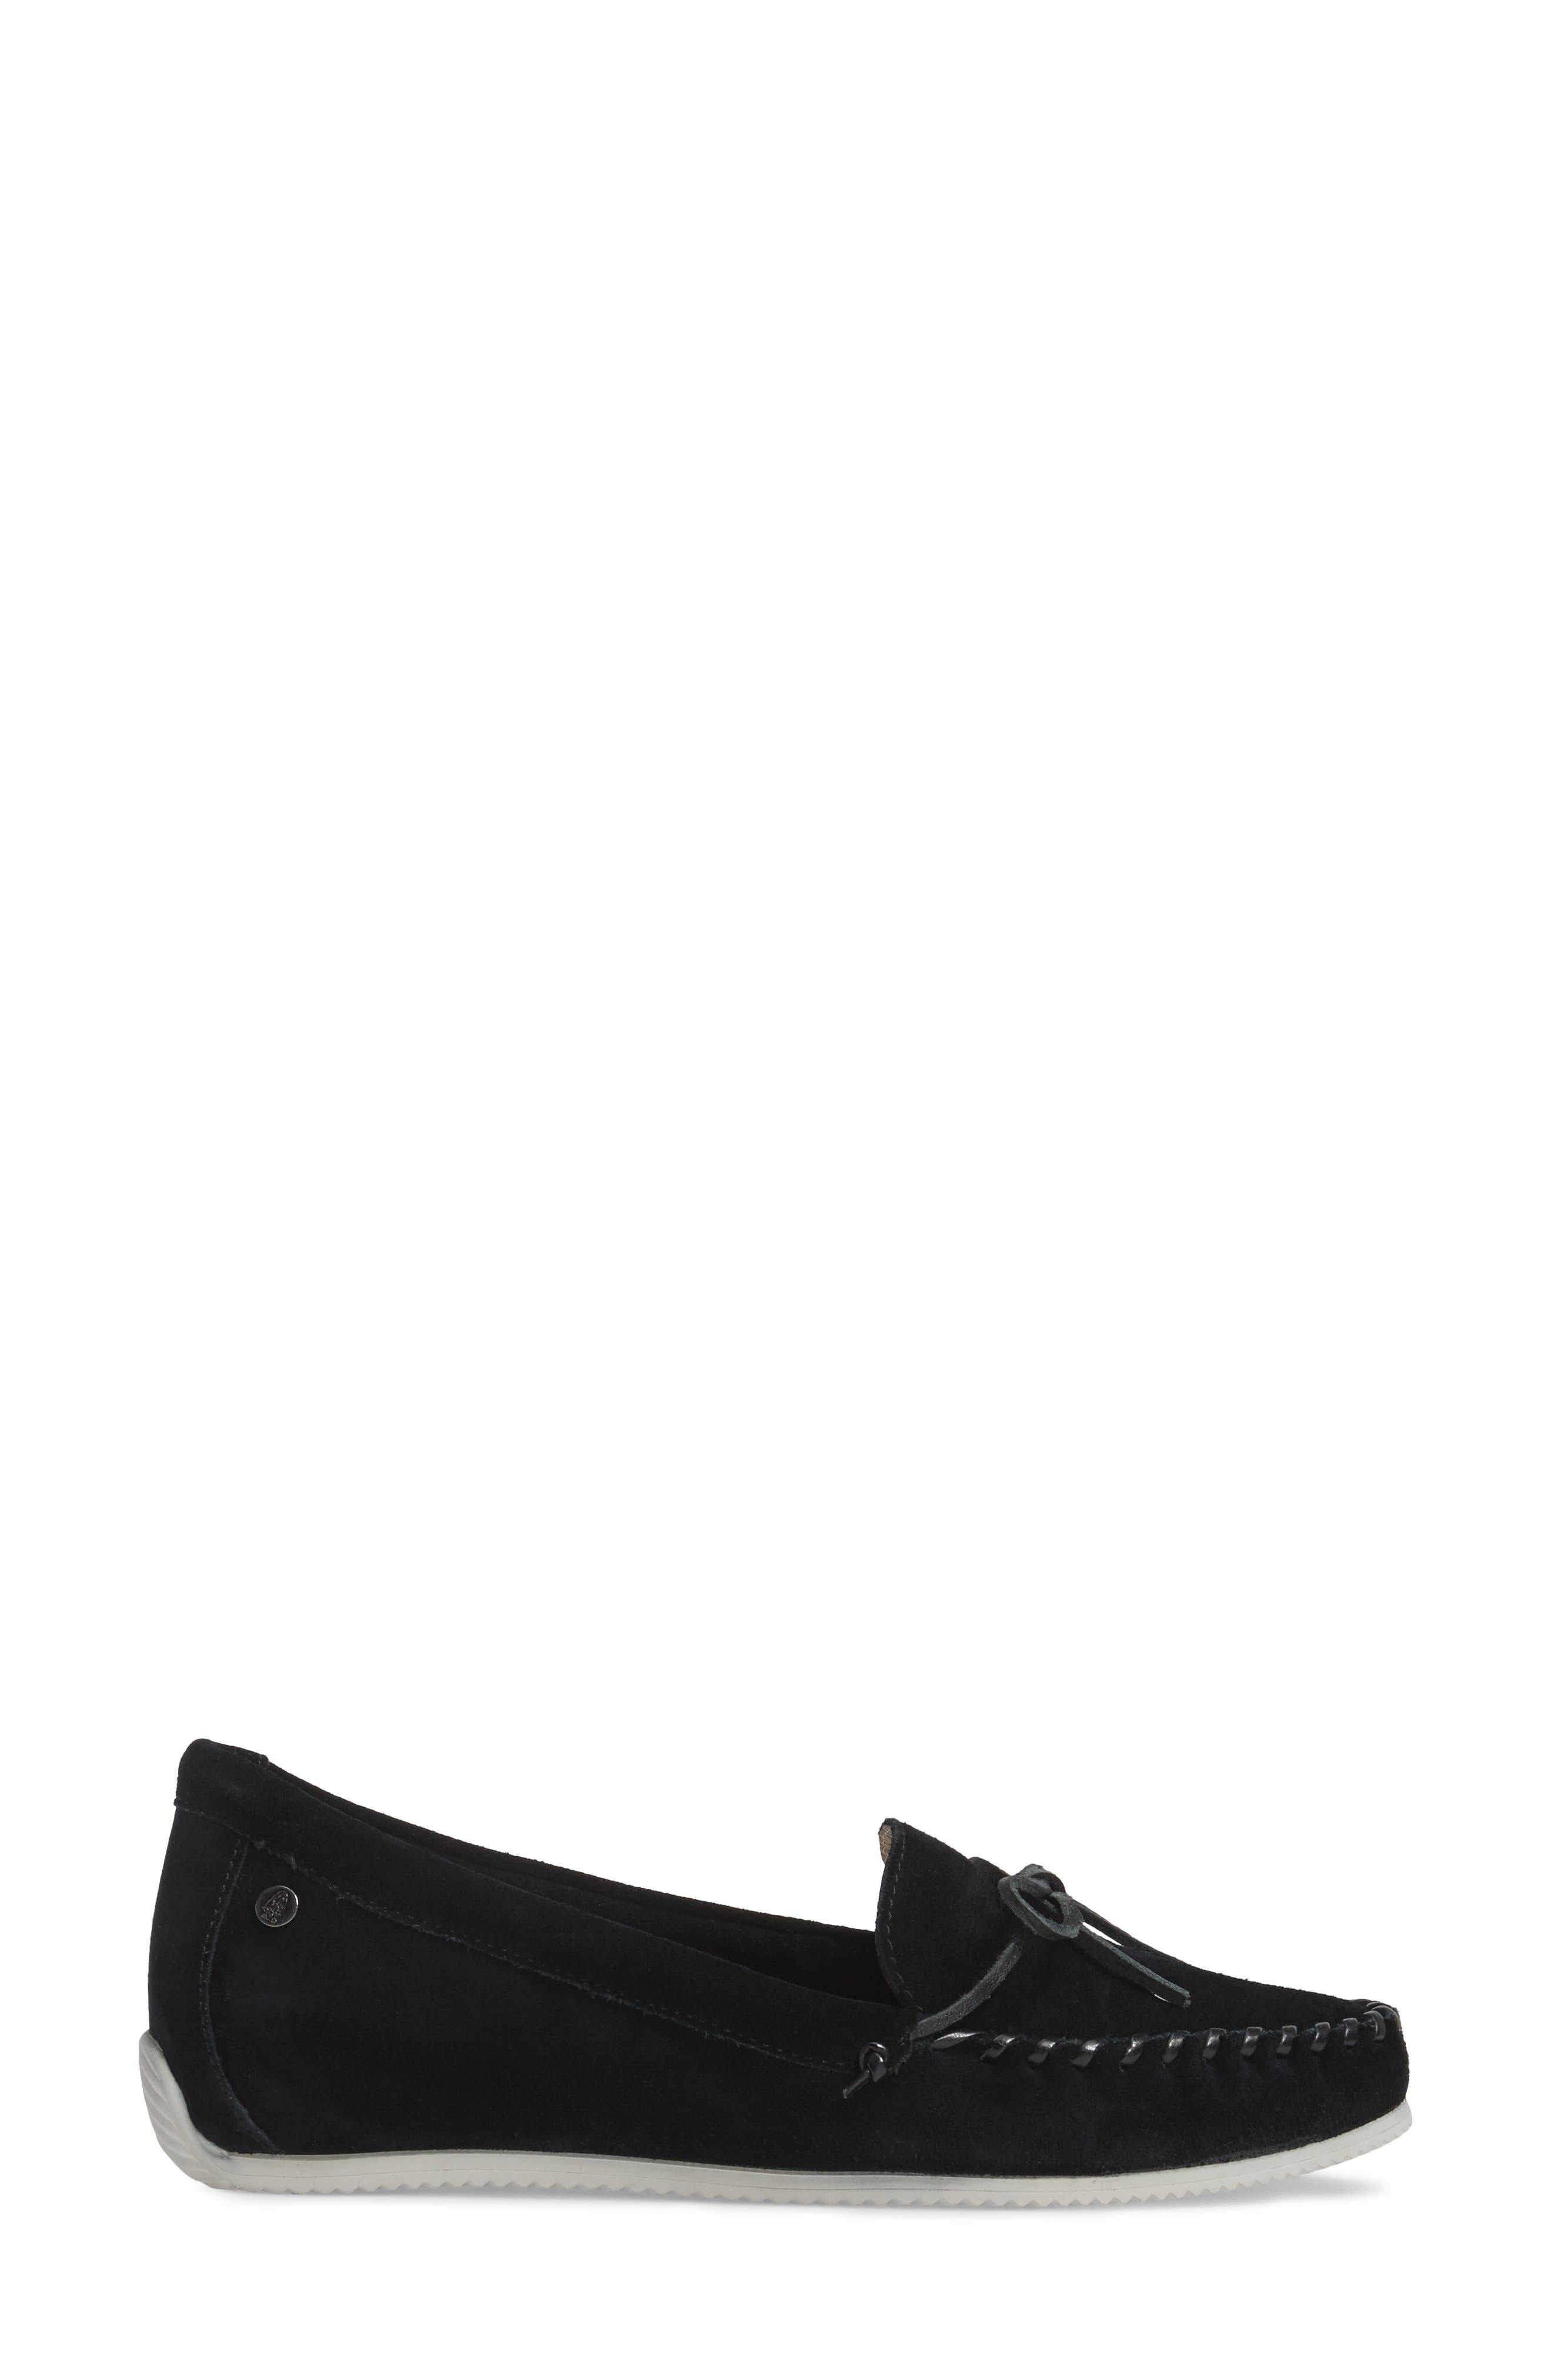 Larghetto Carine Concealed Wedge Moccasin,                             Alternate thumbnail 3, color,                             Black Suede